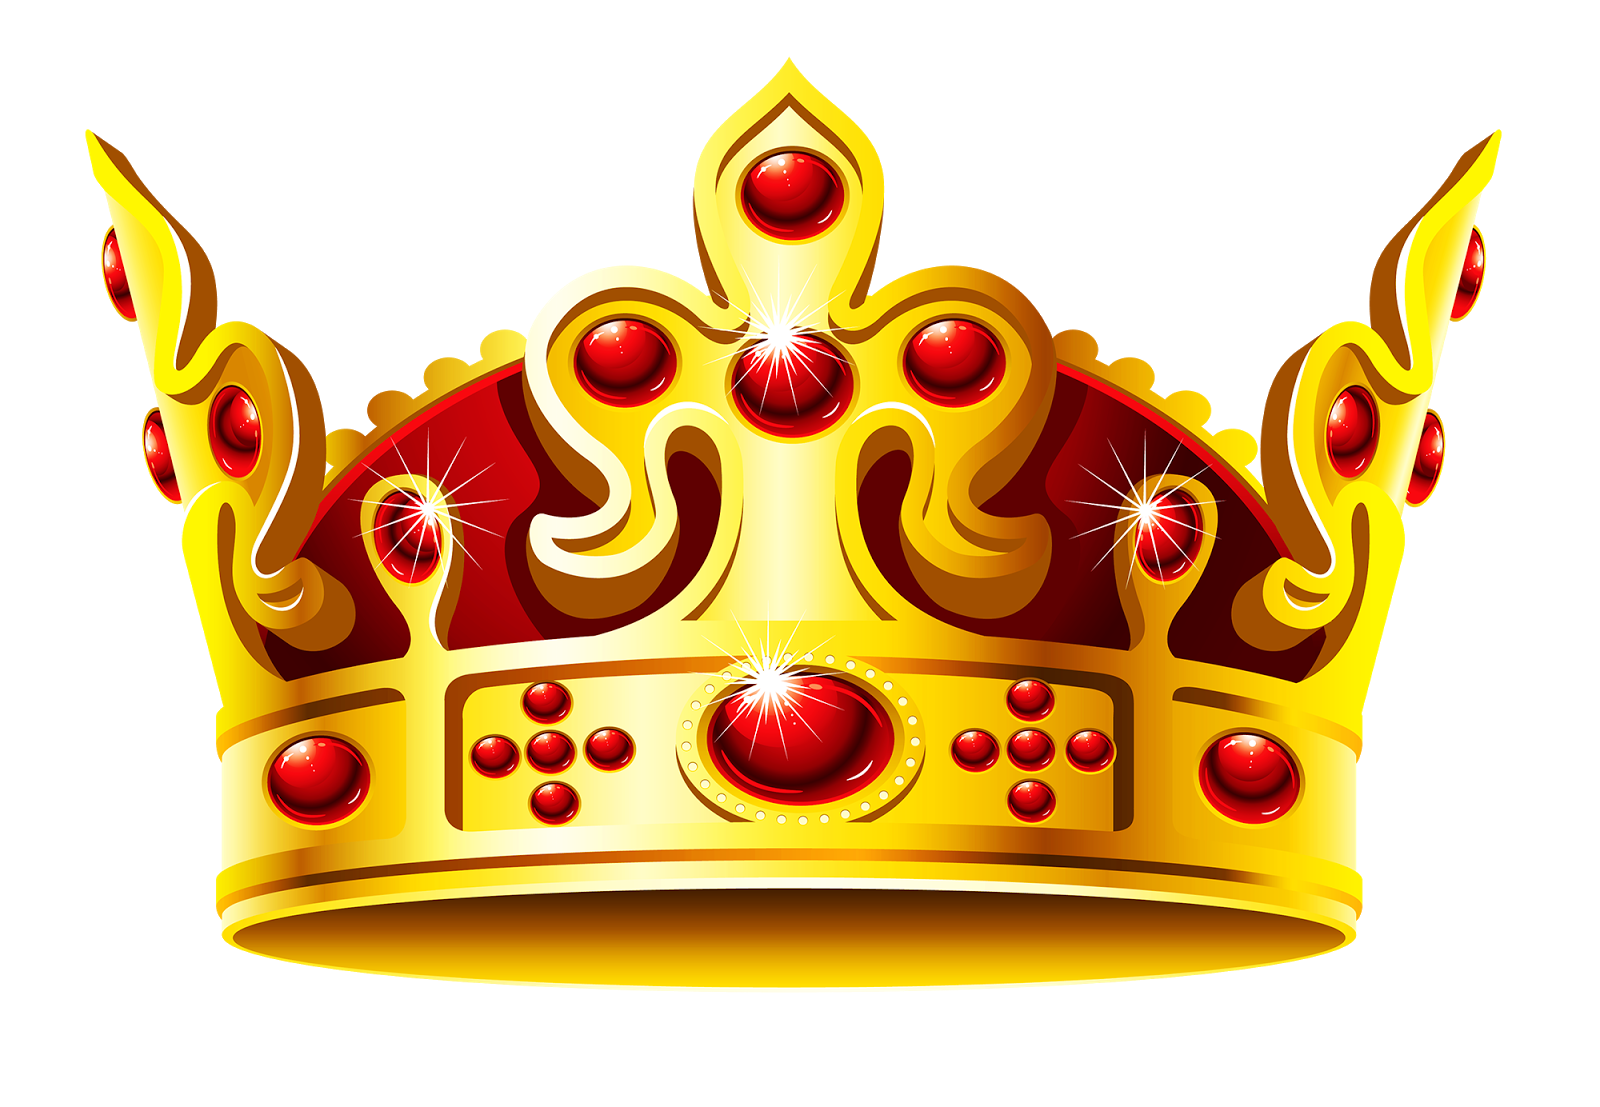 Pass on the crown clipart vector free Crown Clipart at GetDrawings.com | Free for personal use Crown ... vector free